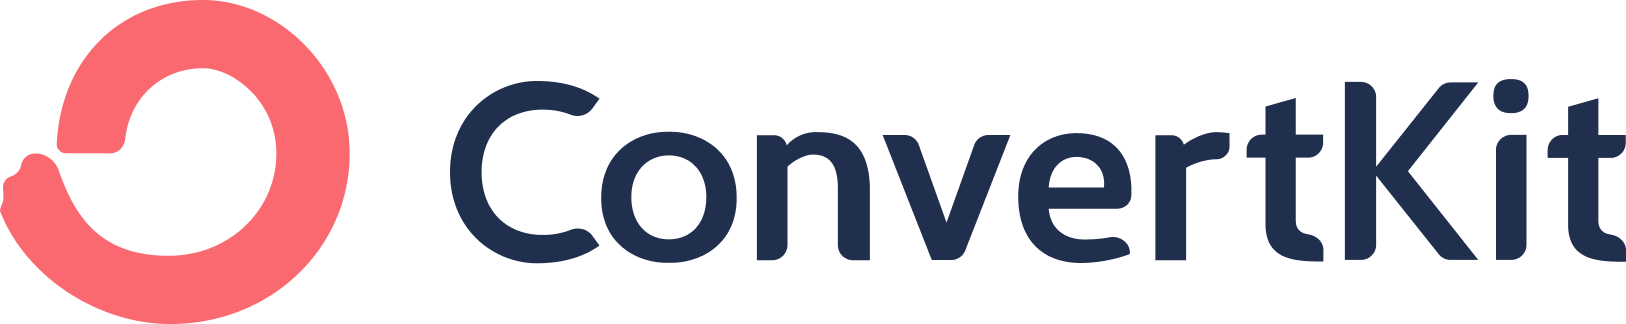 ConvertKit // Grow your email list with smart opt-ins and list-building strategies // Our favorite business tools